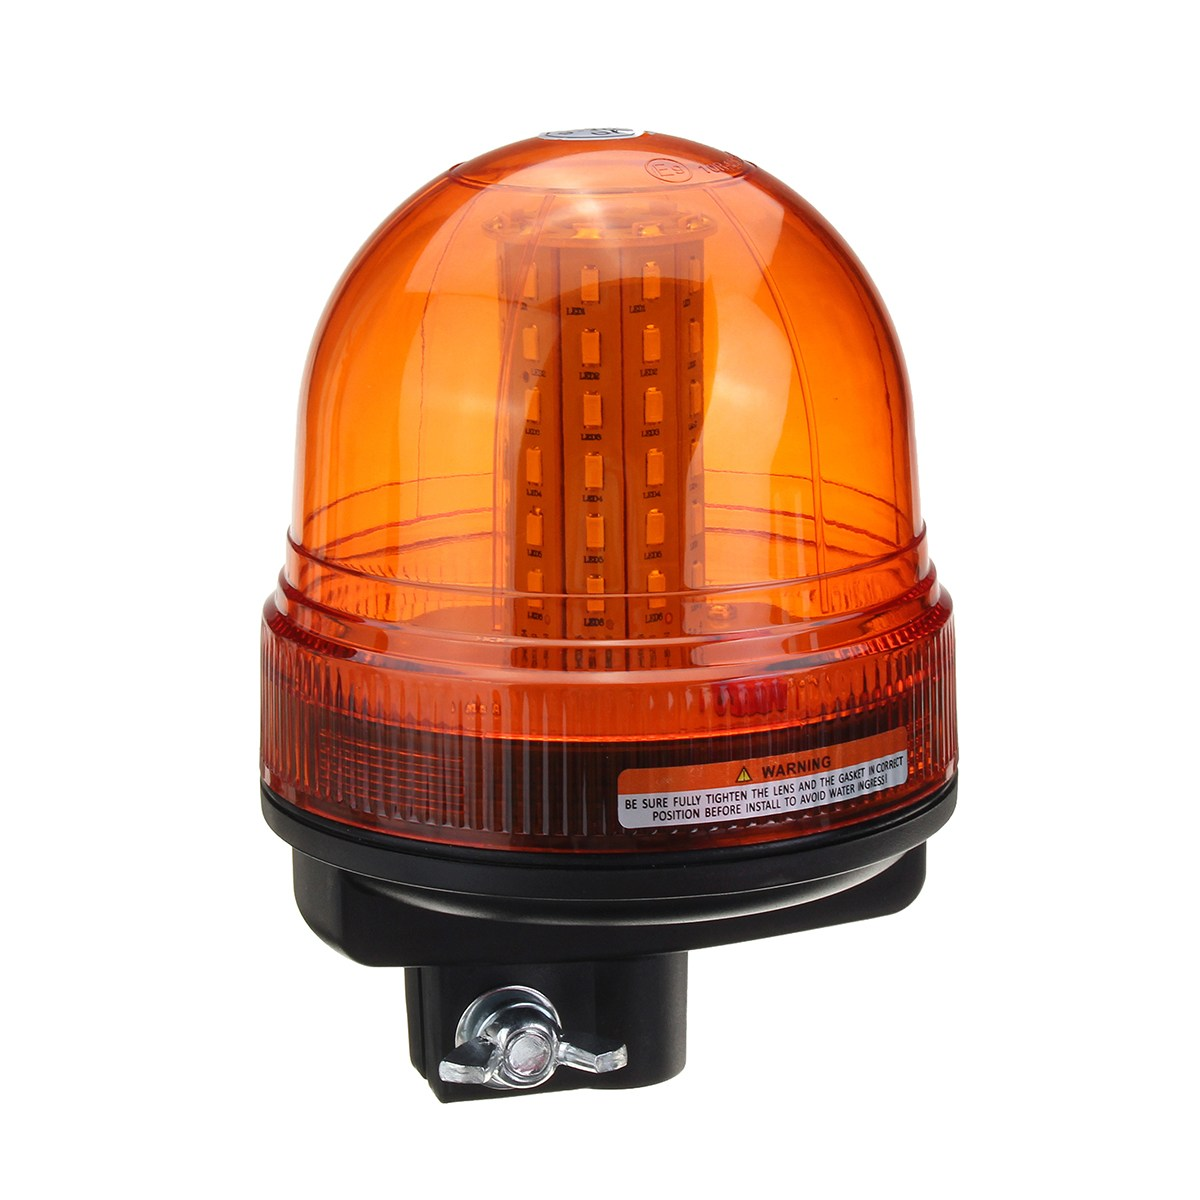 NEW 60 LED Rotating Flashing Amber Beacon Flexible Tractor Warning Light Traffic Light Roadway Safety safurance led rotating flashing amber beacon flexible tractor warning light 12v 24v roadway safety